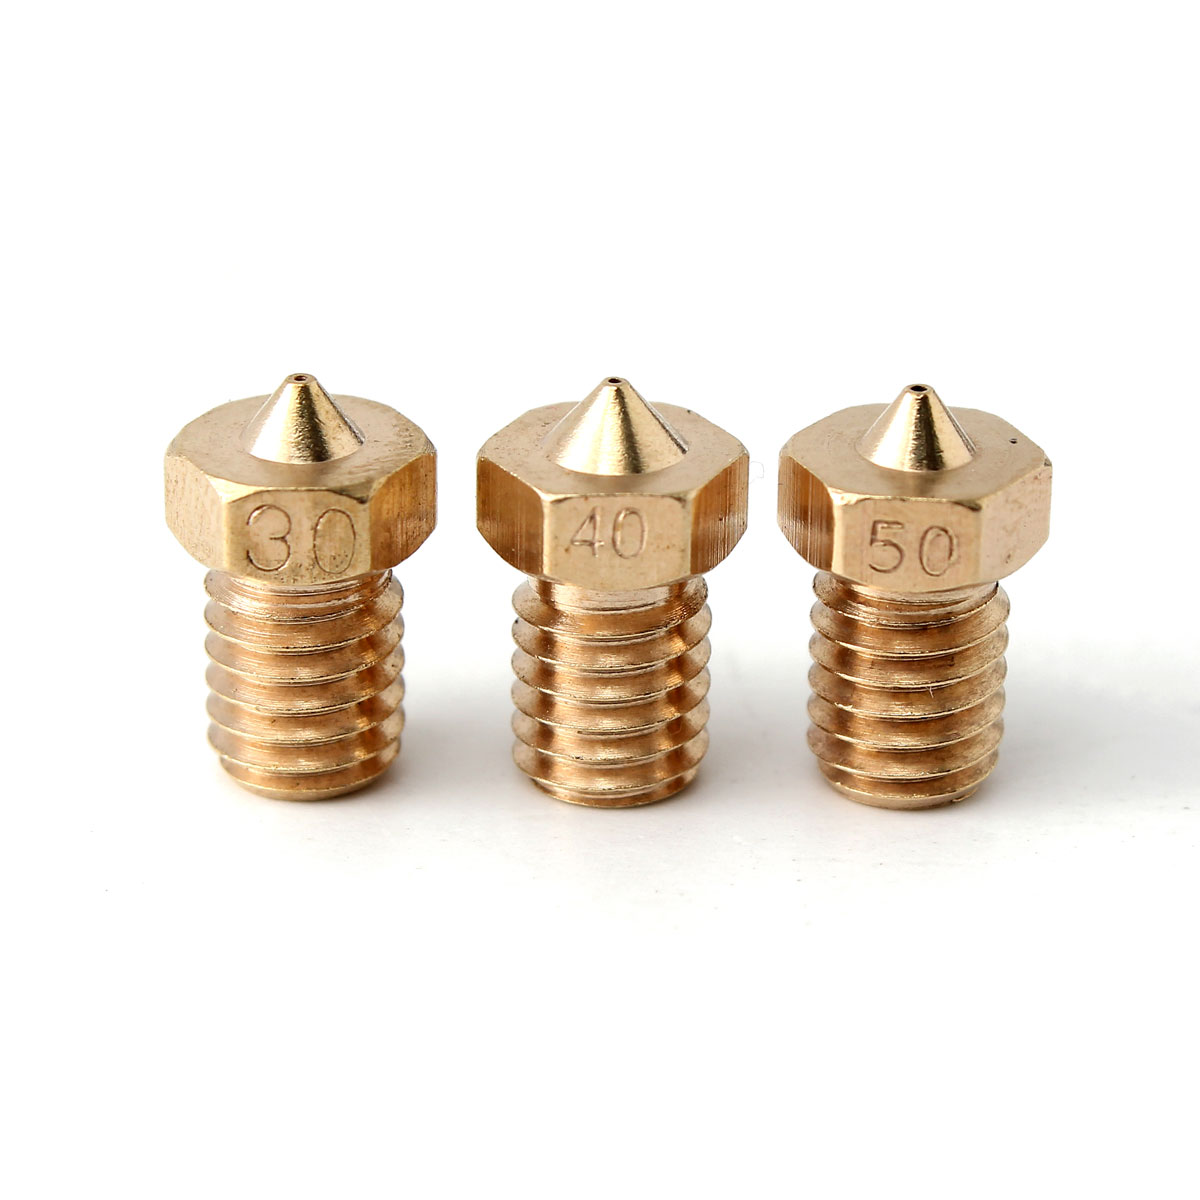 1 Pc M6 Threaded Copper Nozzle 0.3-0.4-0.5MM For 1.75mm Supplies 3D Printer